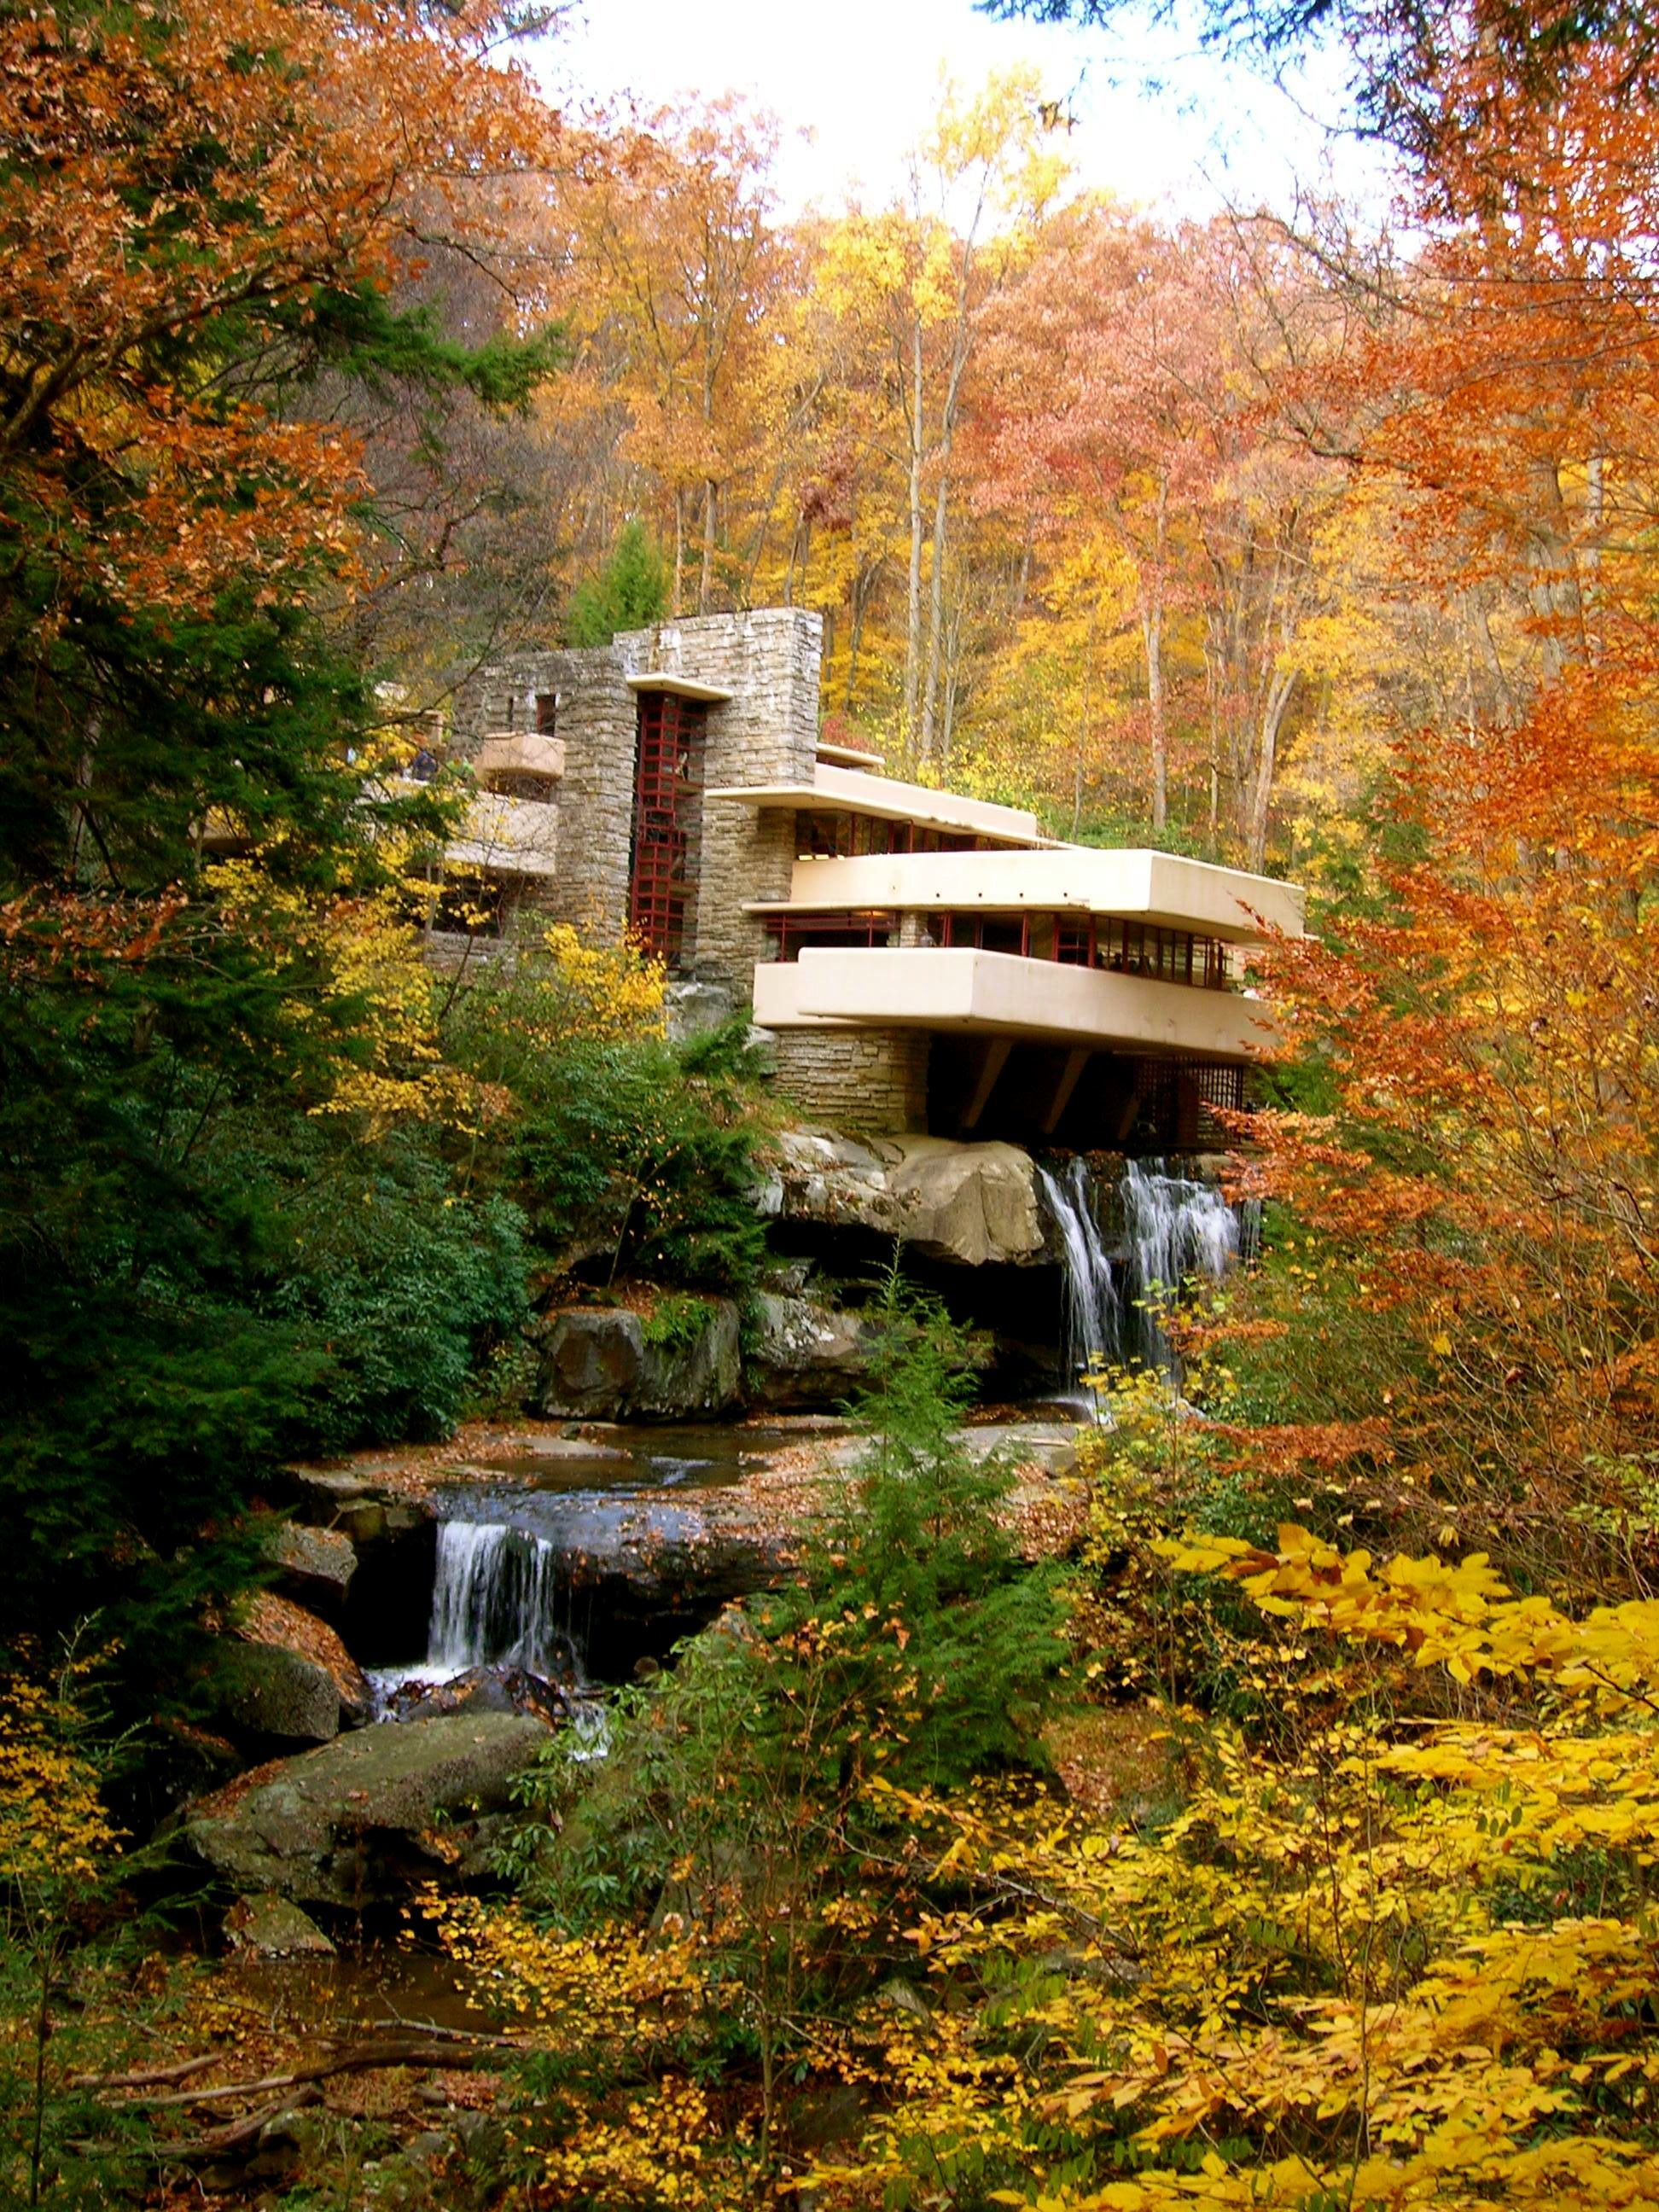 How To Reattach Falling Wallpaper Frifotos Fallingwater In Fall Amanda Elsewhere